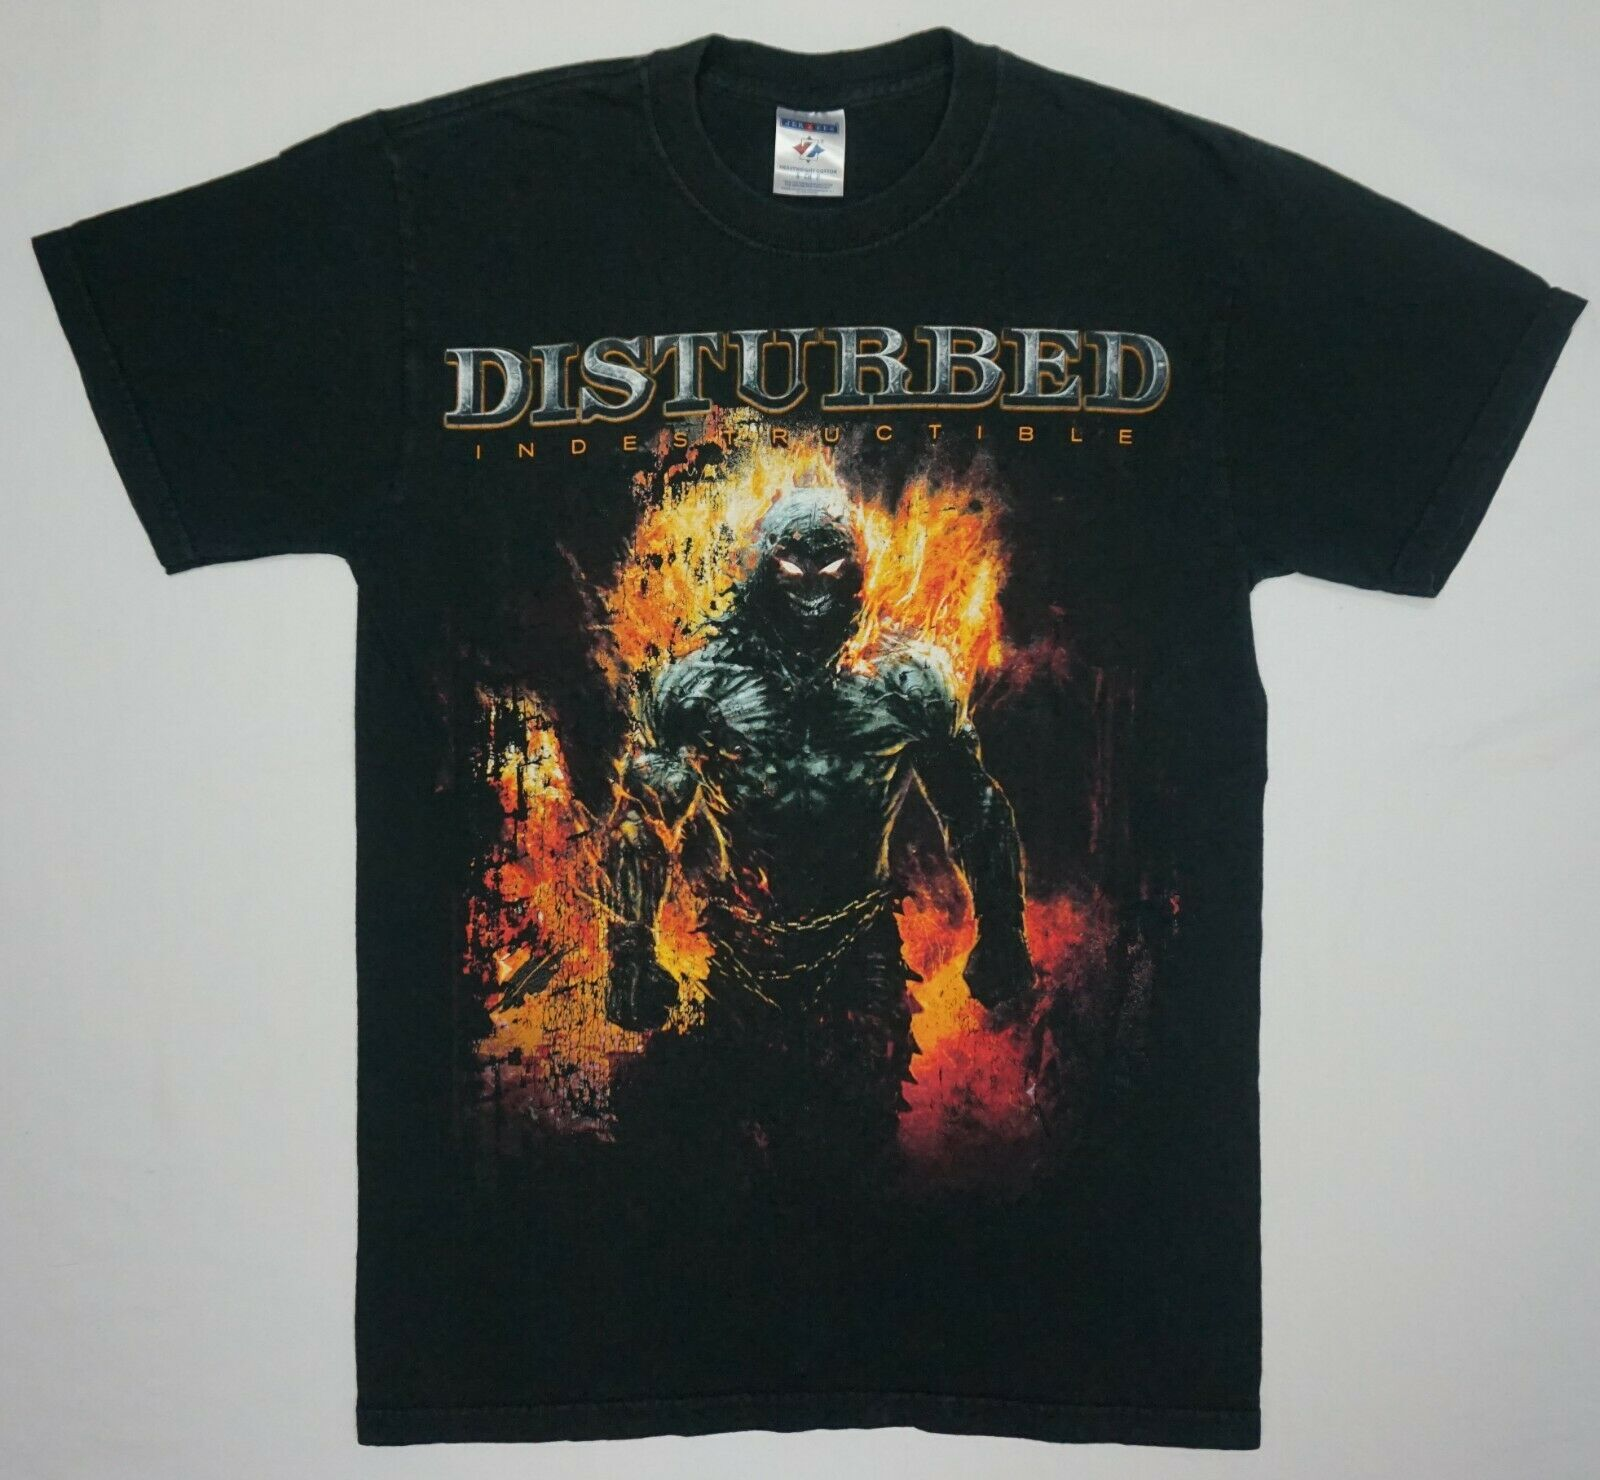 Disturbed INDESTRUCTIBLE 2008 Tour T Shirt Size S Vtg Heavy Metal Hard Rock Band image